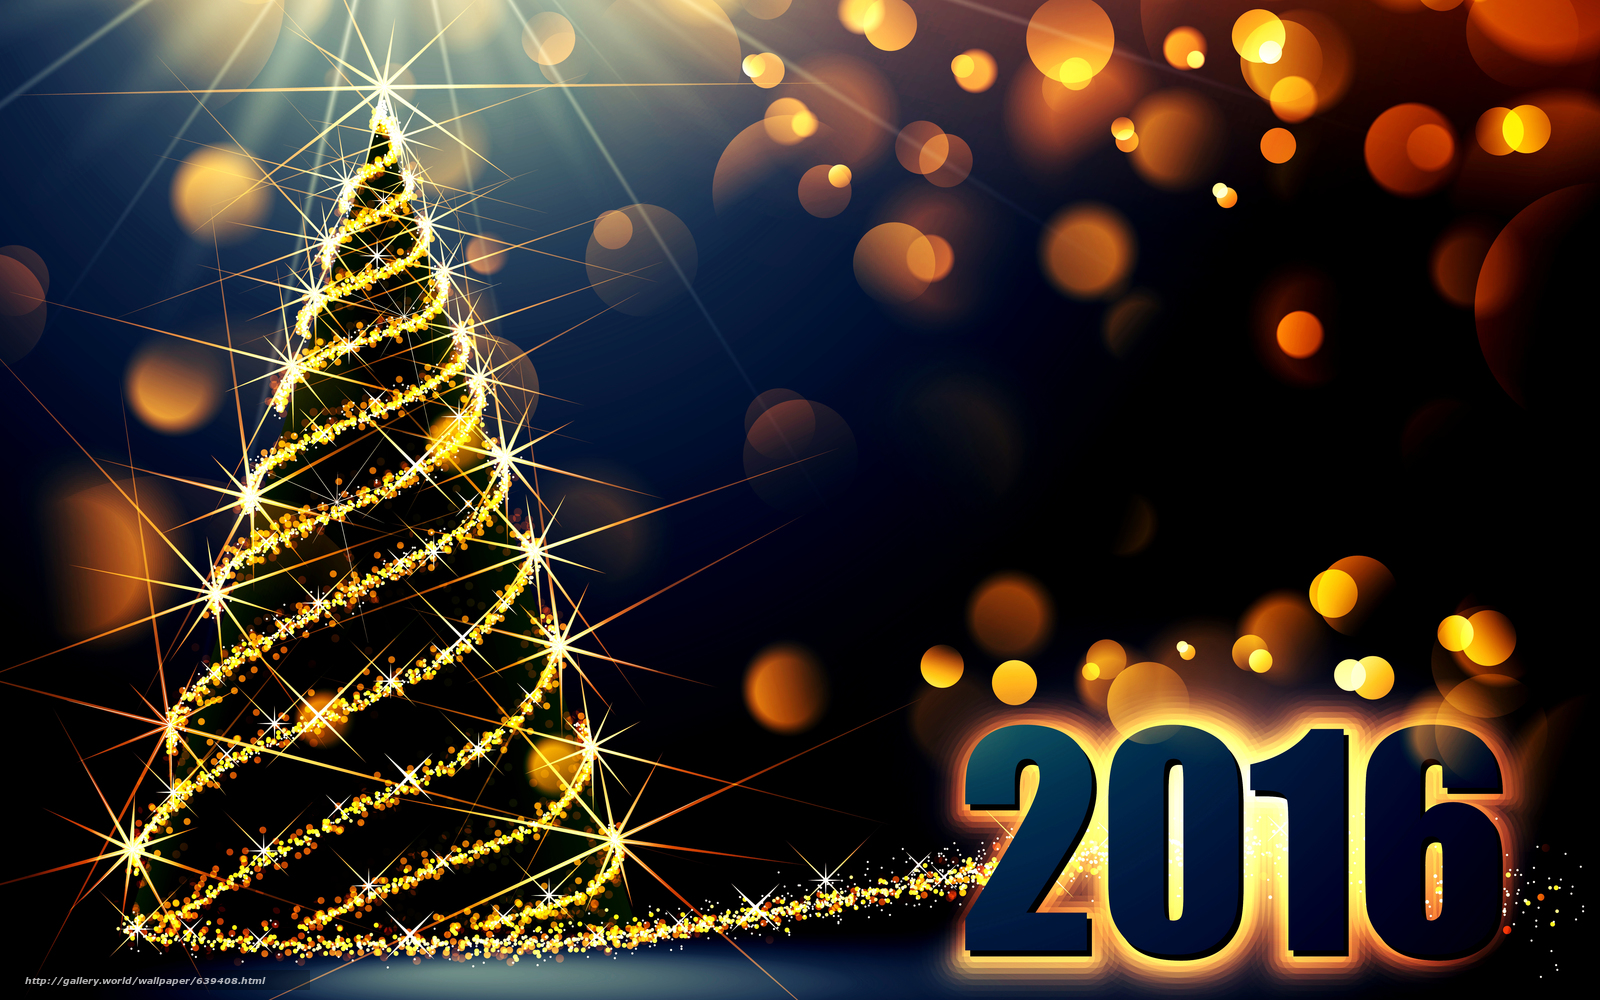 wallpaper new year 2016 date